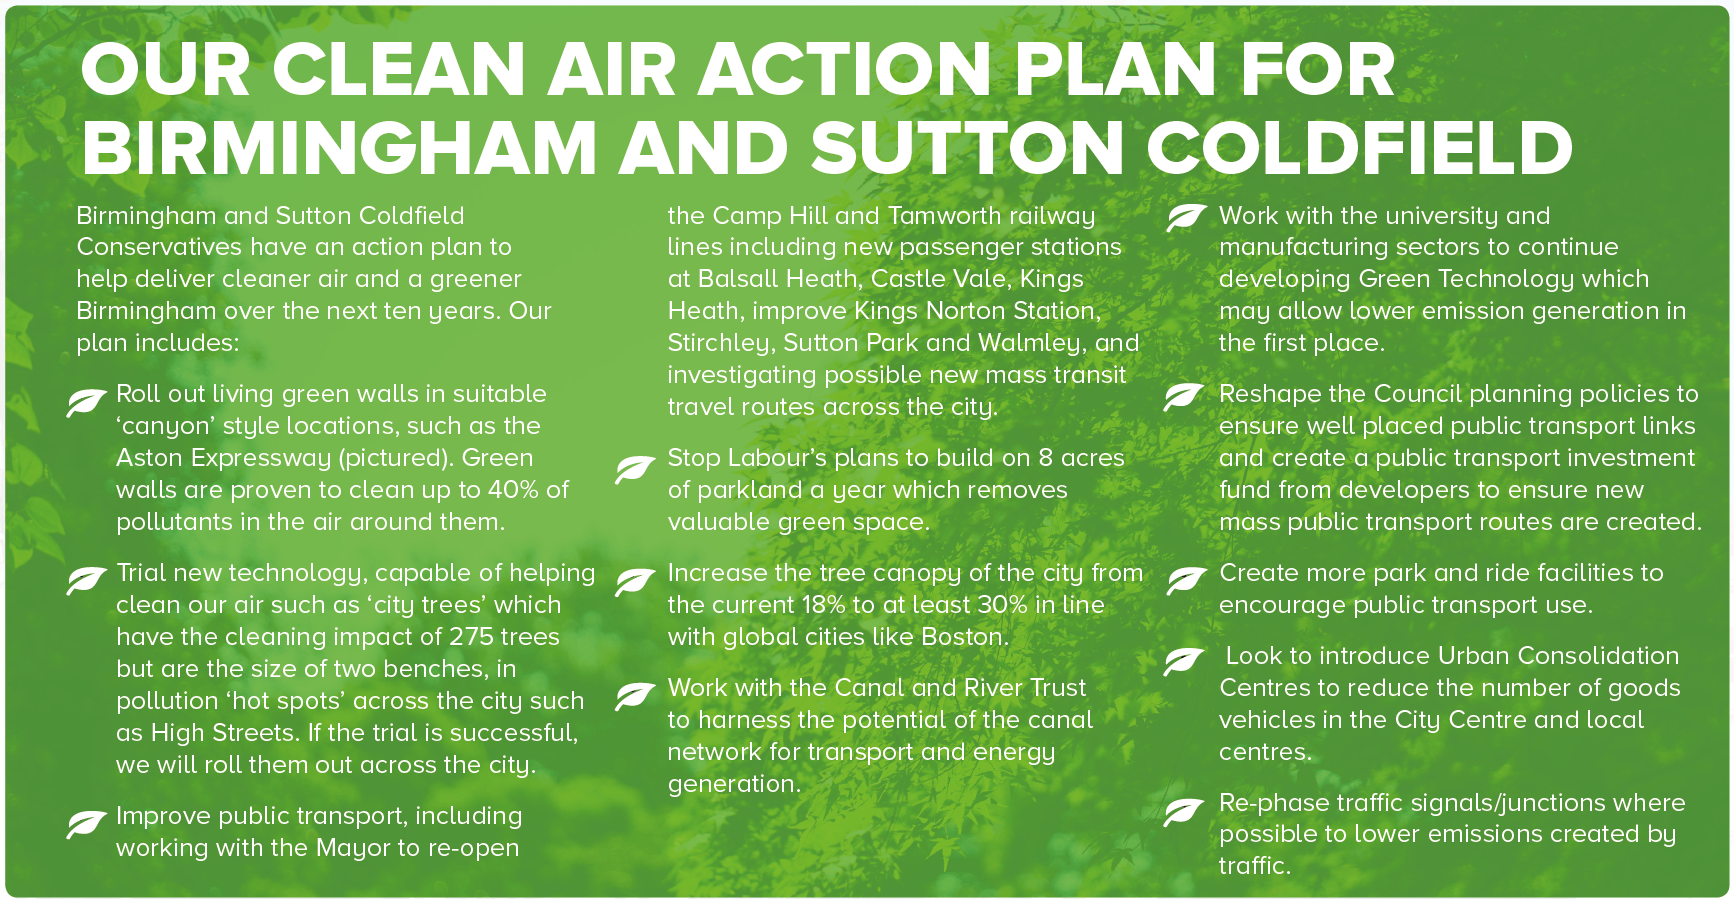 Our Clean Air Plan for Birmingham